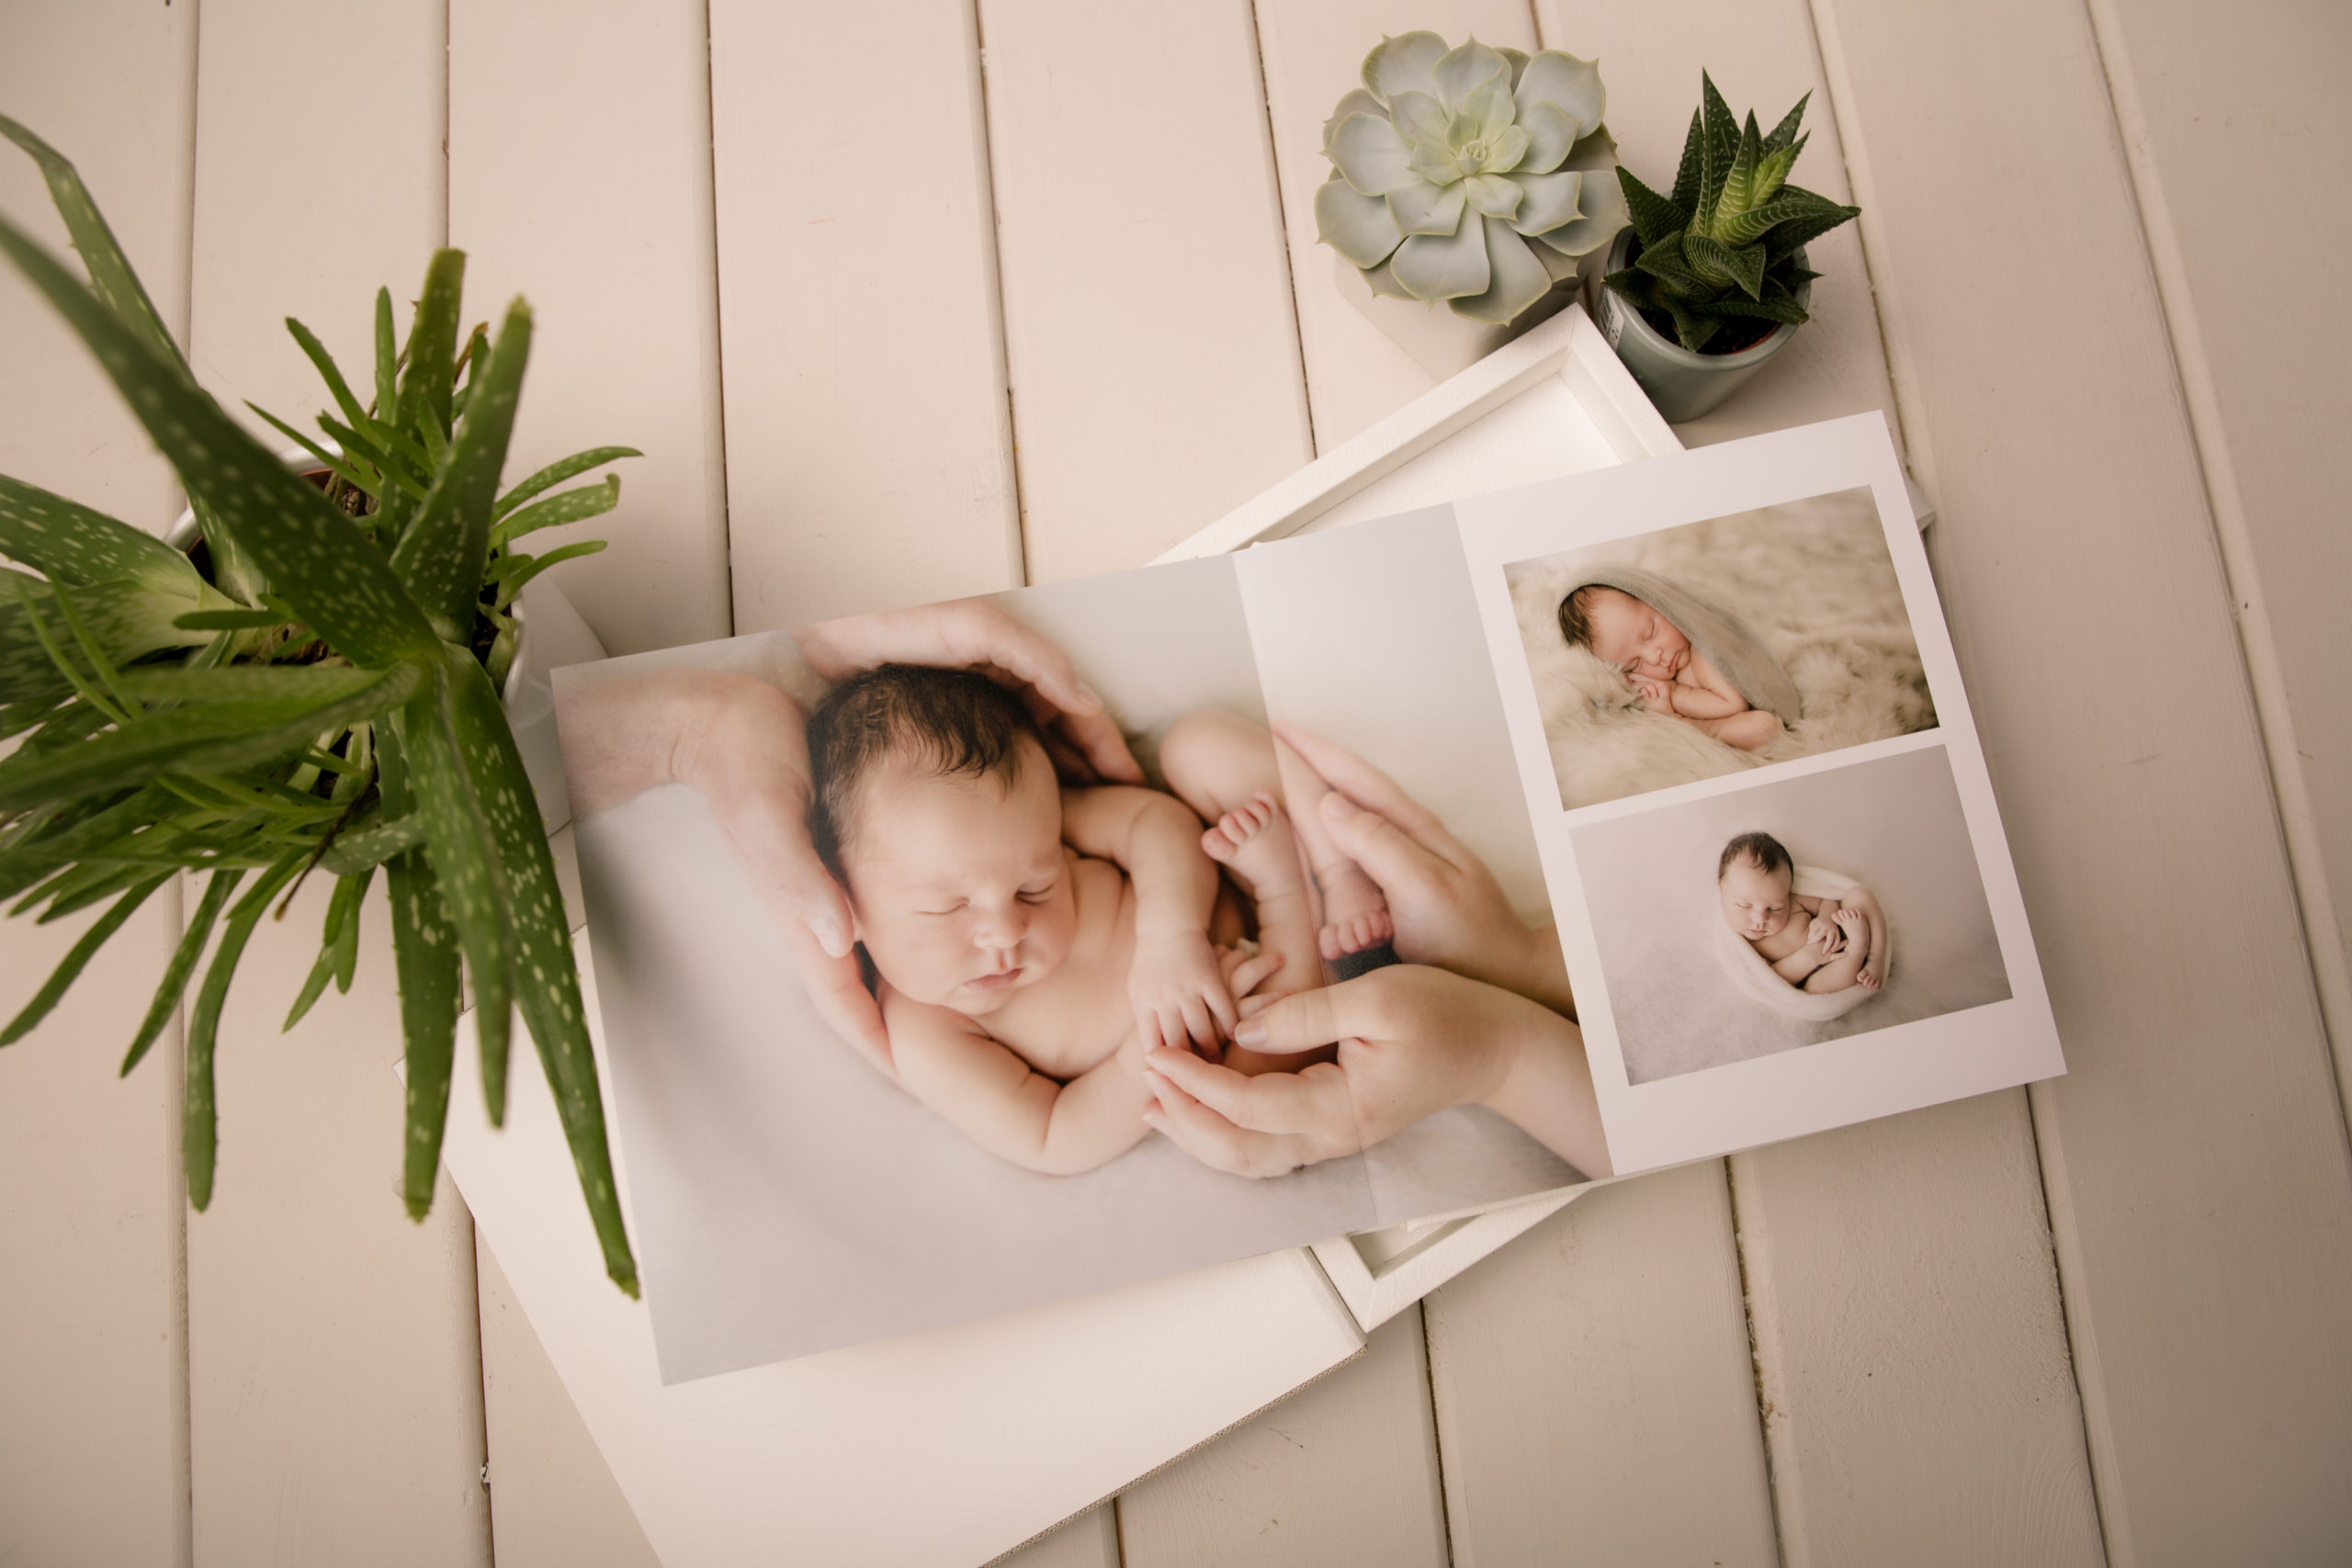 Photography Art Printing products professional high quality acrylic photo album with leather cover and lay flat thick pages photo album newborn professional photo display south west London photographer Wimbledon SW19